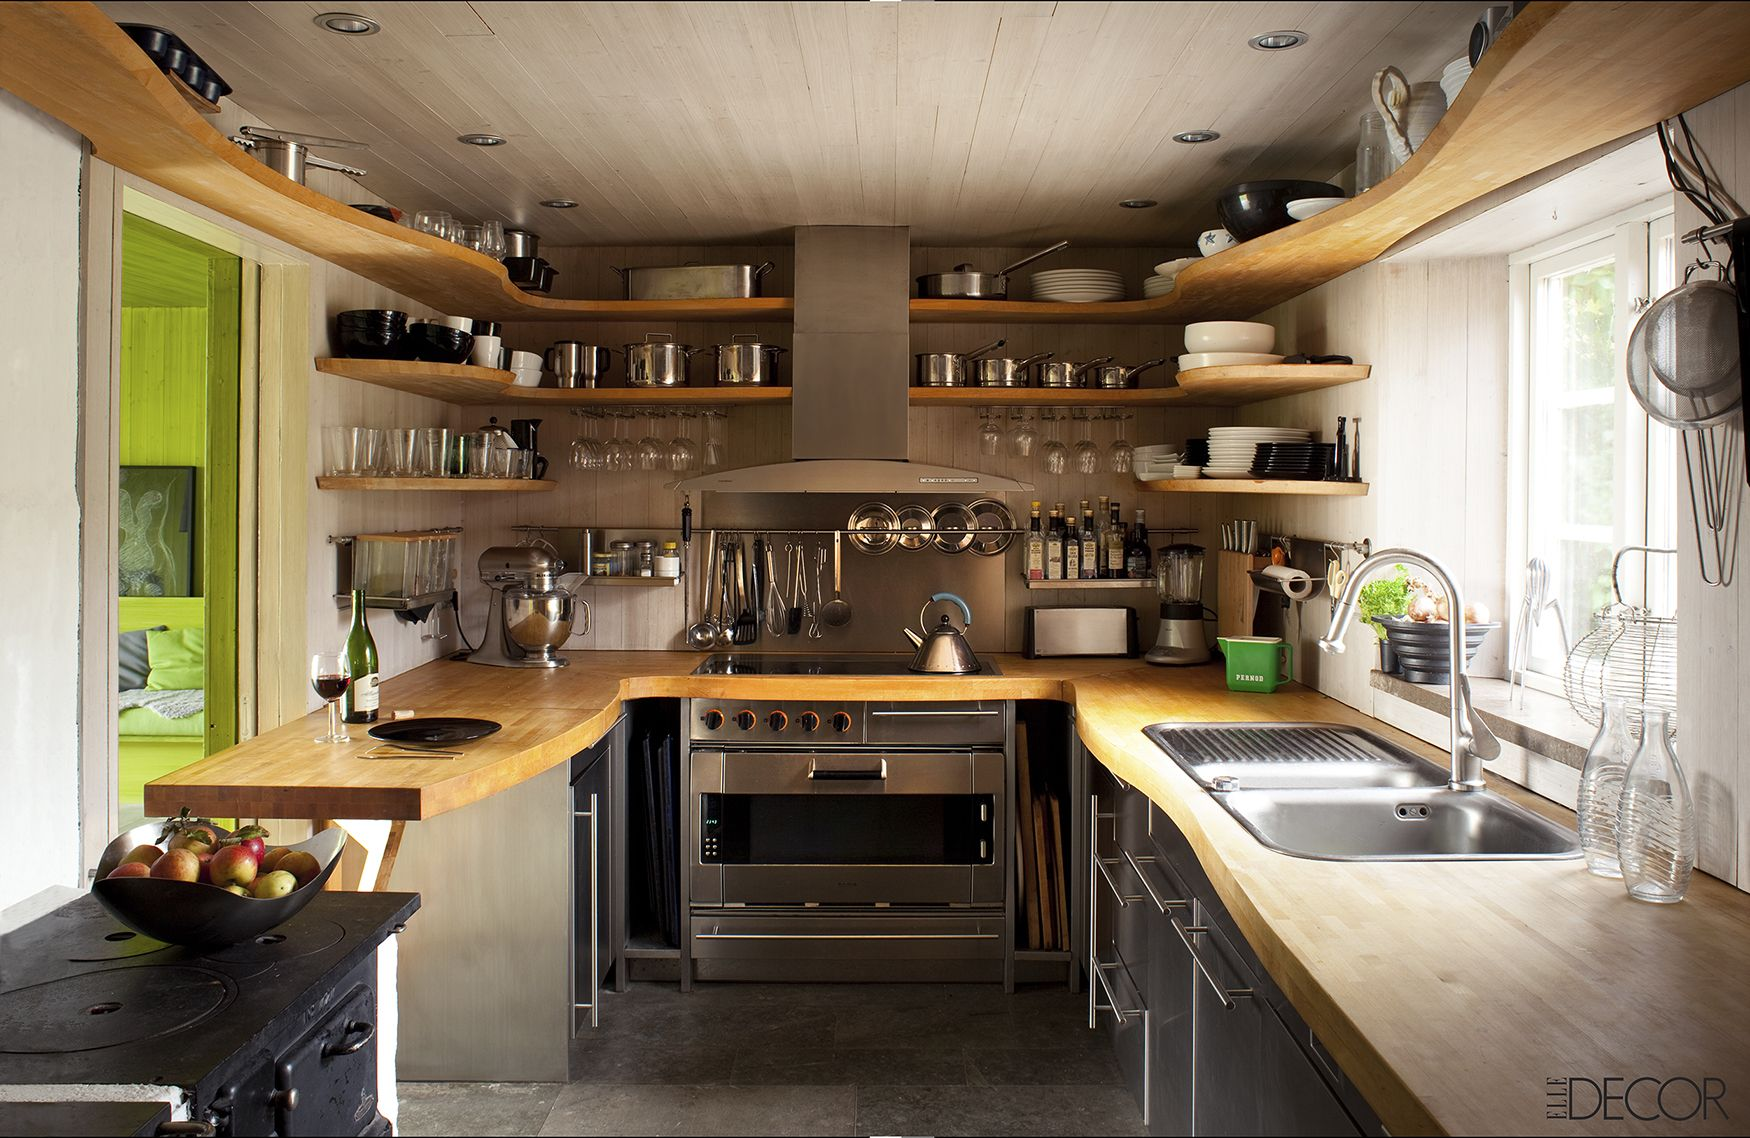 decor for kitchen honest perfect form best small designs design ideas tiny kitchens